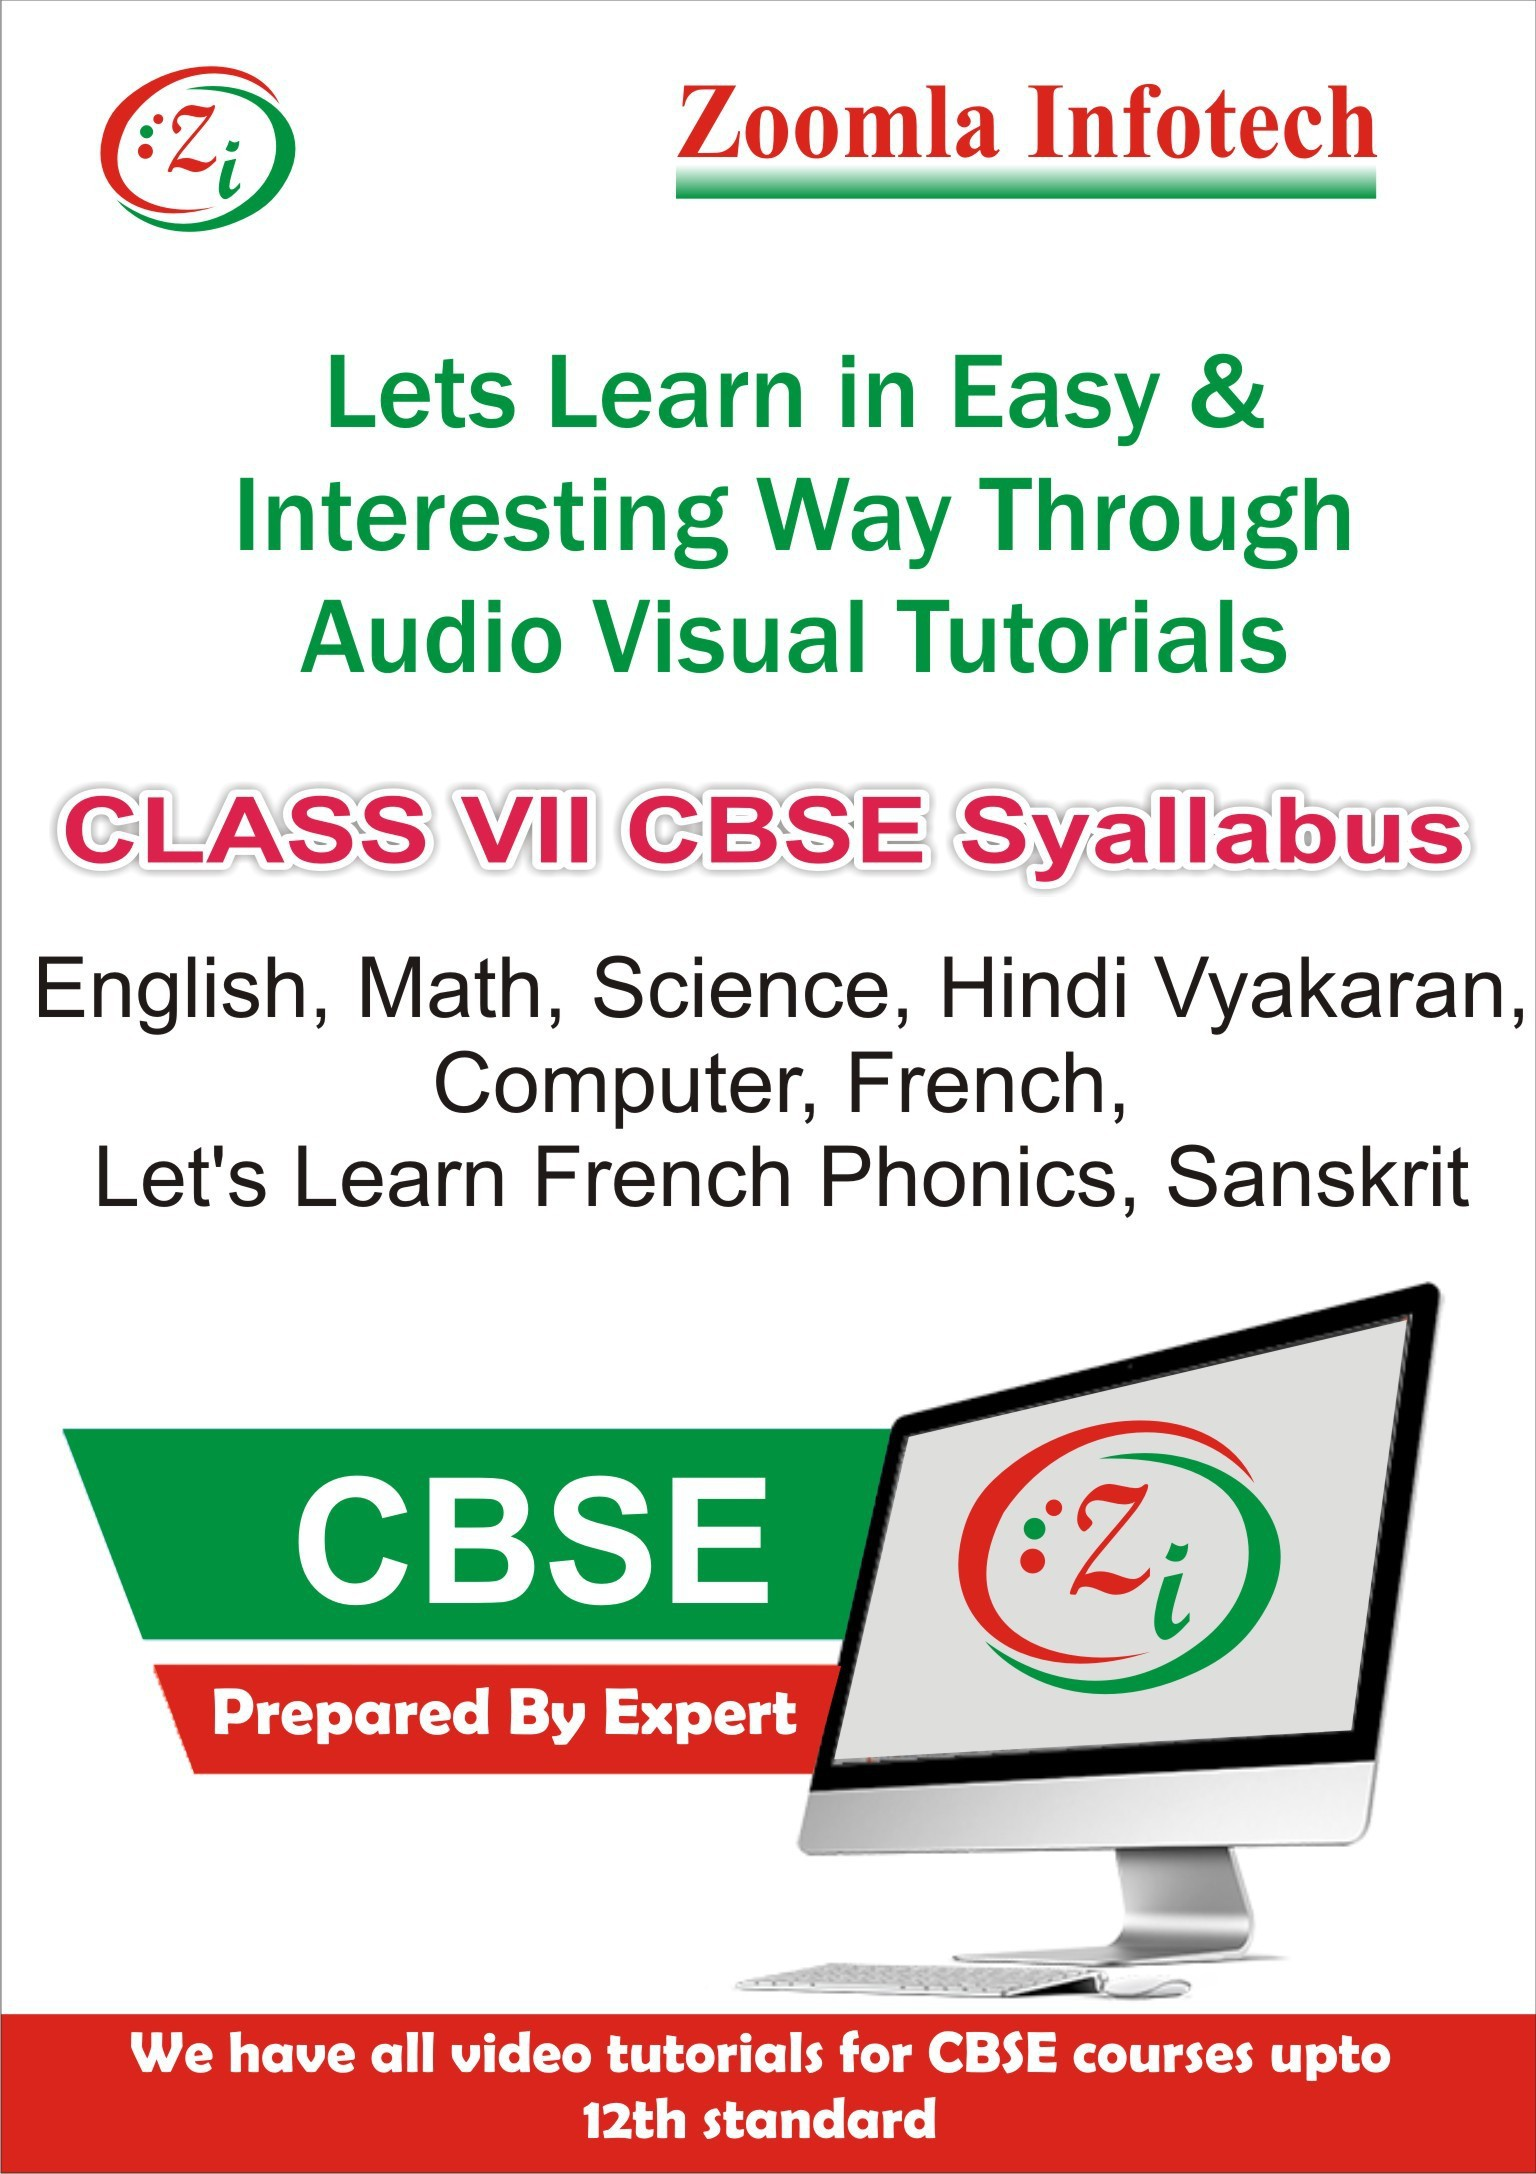 Zoomla Infotech Class 7 CBSE English, Maths, Science, Computer, Hindi Vyakaran, French, Lets Learn French Phonics, Sanskrit Video Tutorials(DVD)